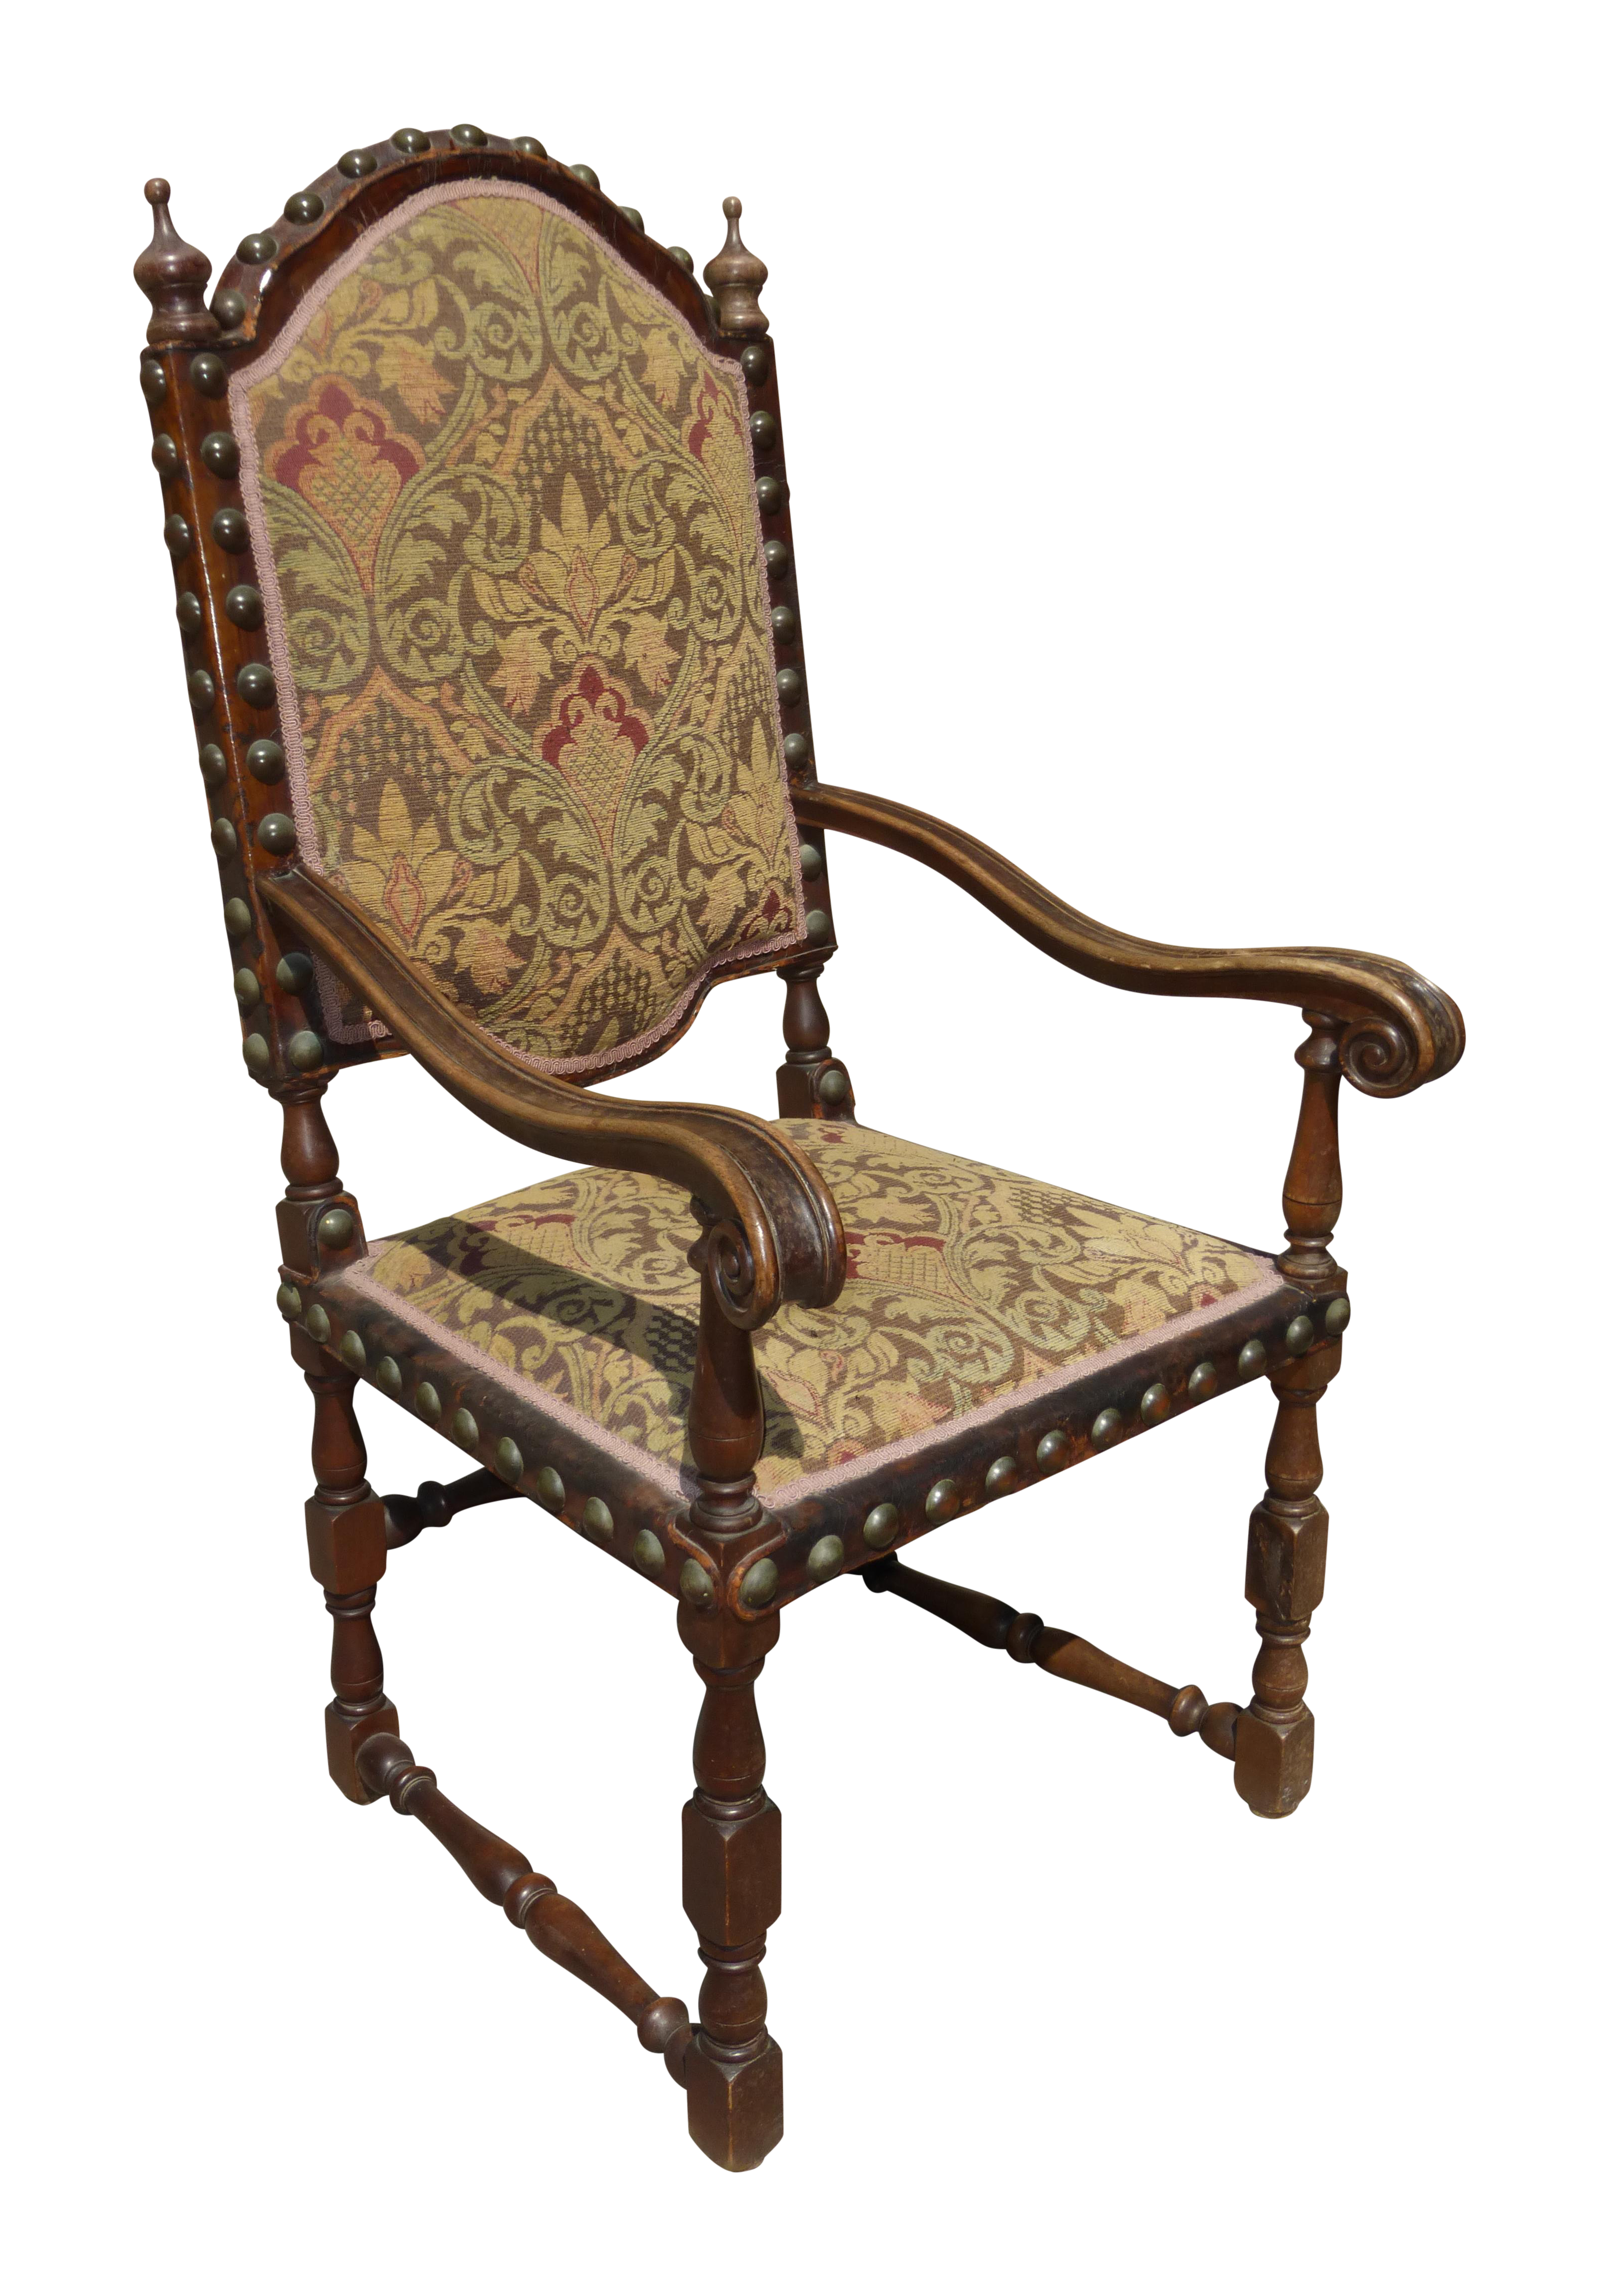 Spanish Revival Throne Chair With Leather Chairish